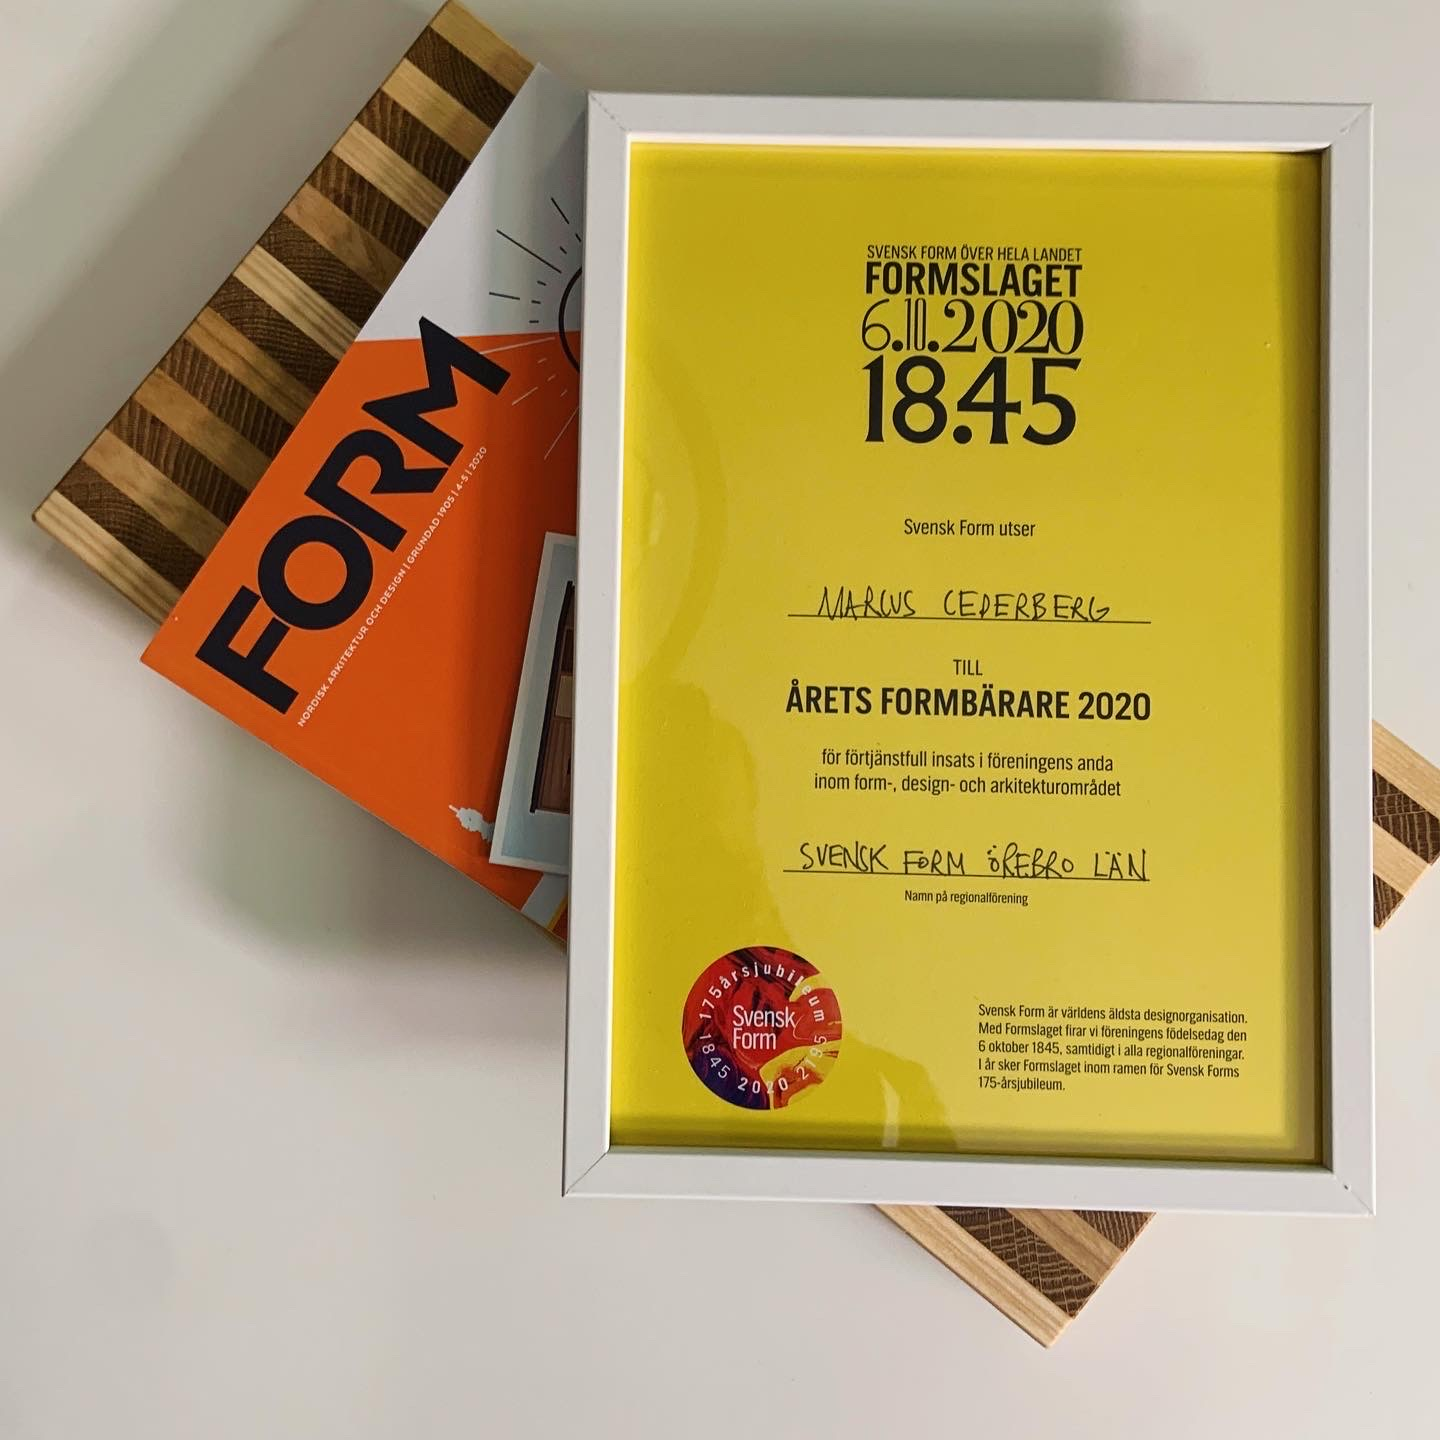 Design prize from Swedish Design Association